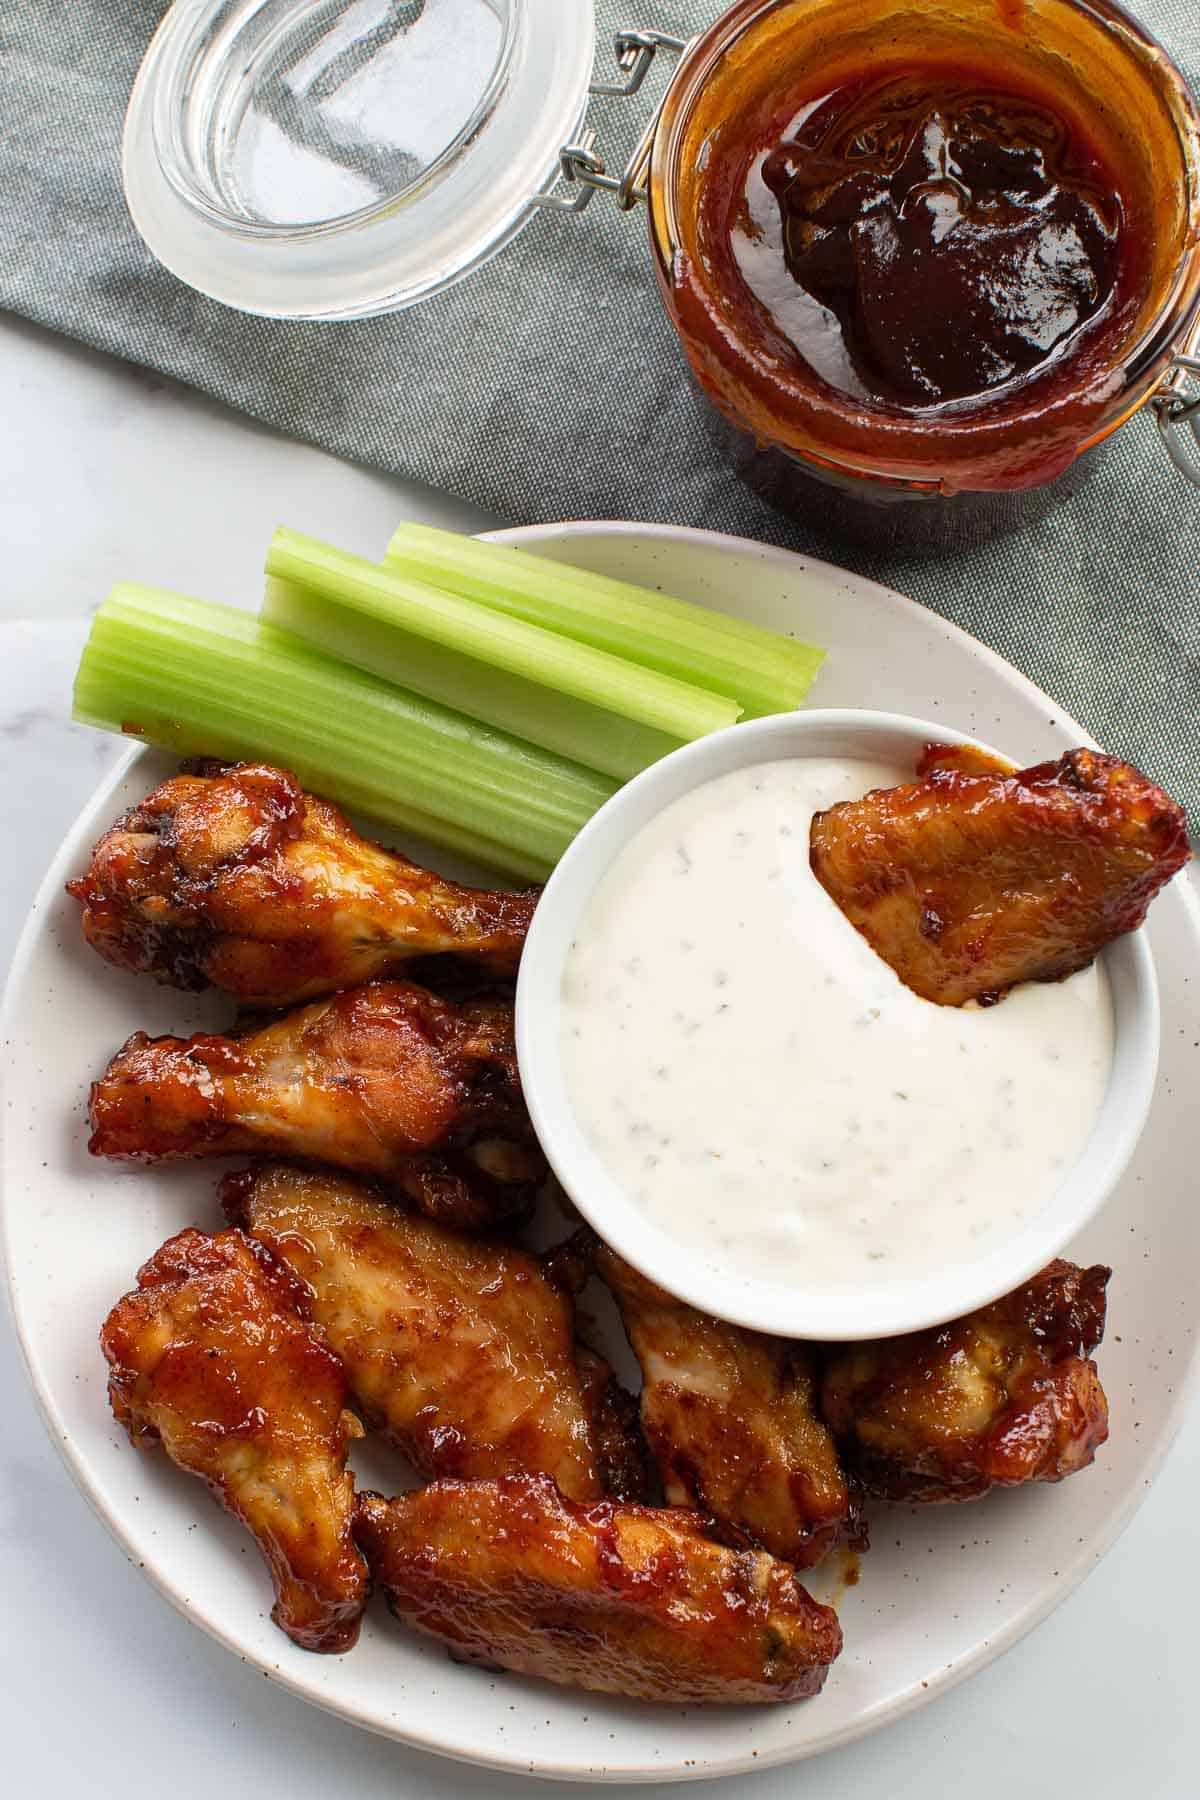 Oven baked BBQ chicken wings with ranch dressing and BBQ sauce on the side.